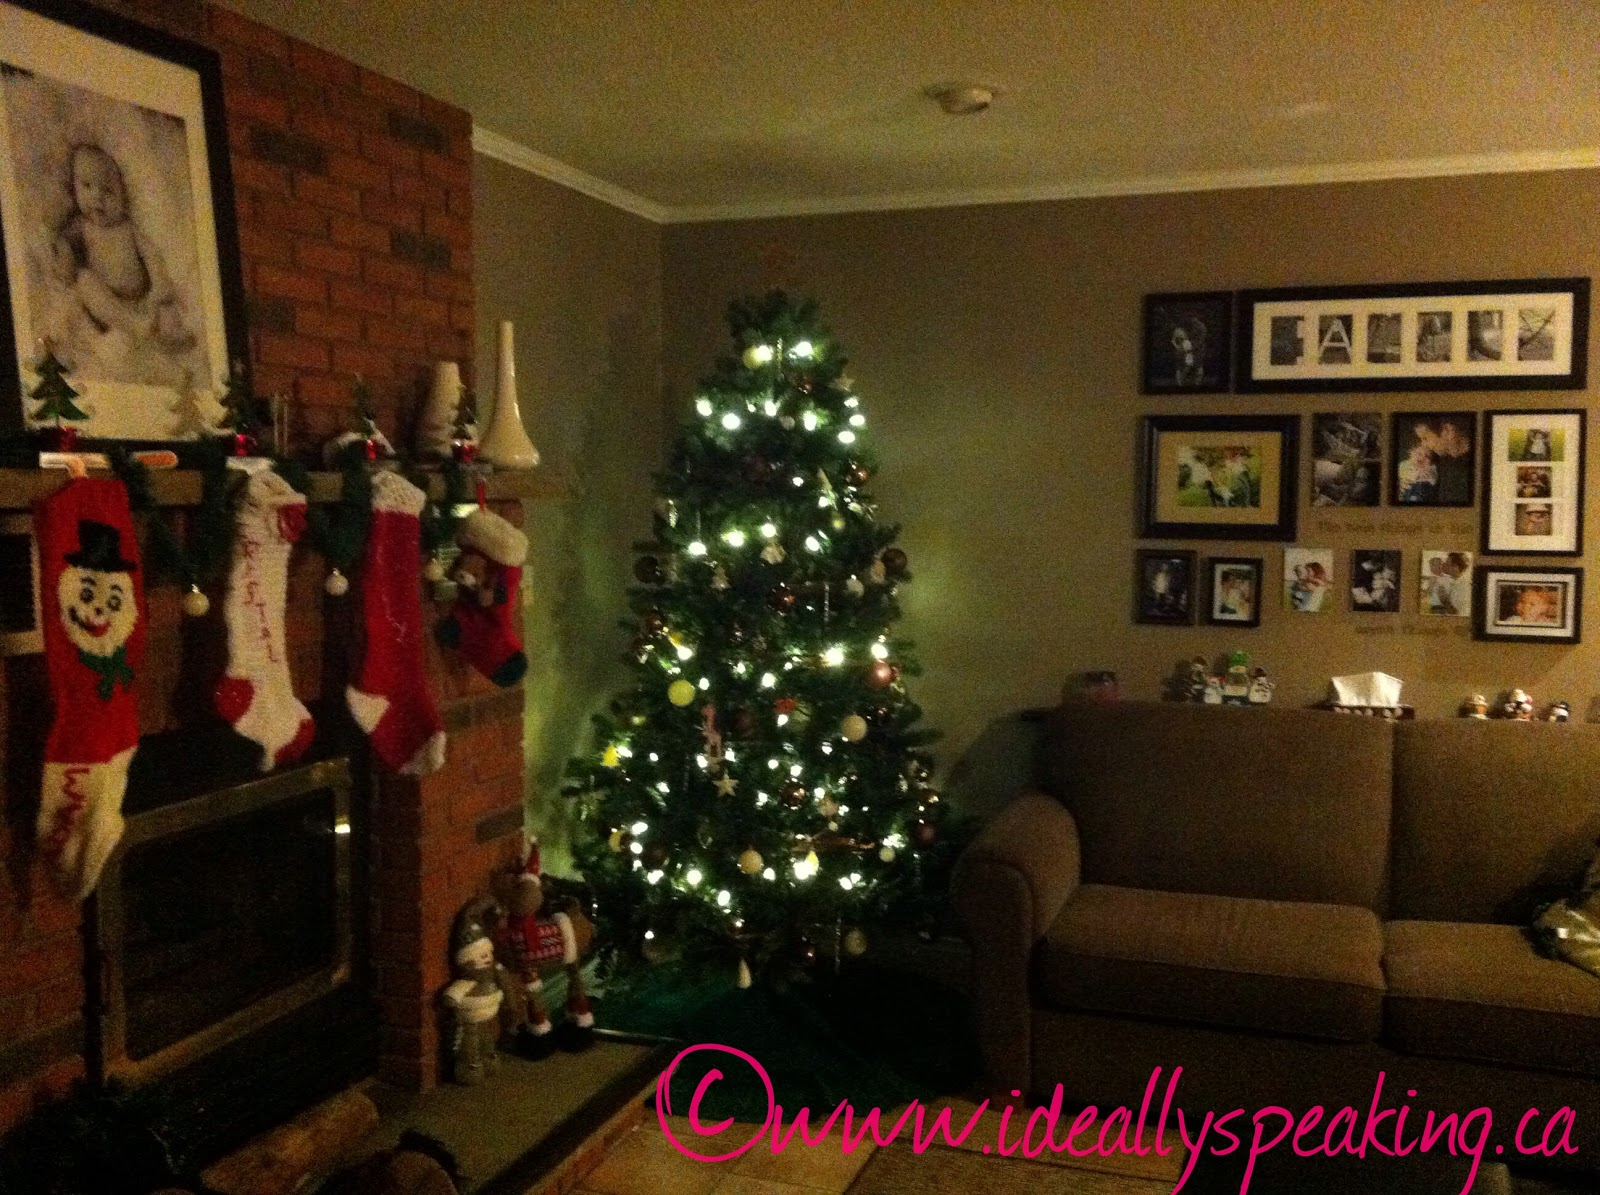 Christmas Tree, Fireplace, gallery wall, stockings on fireplace, parenting, family